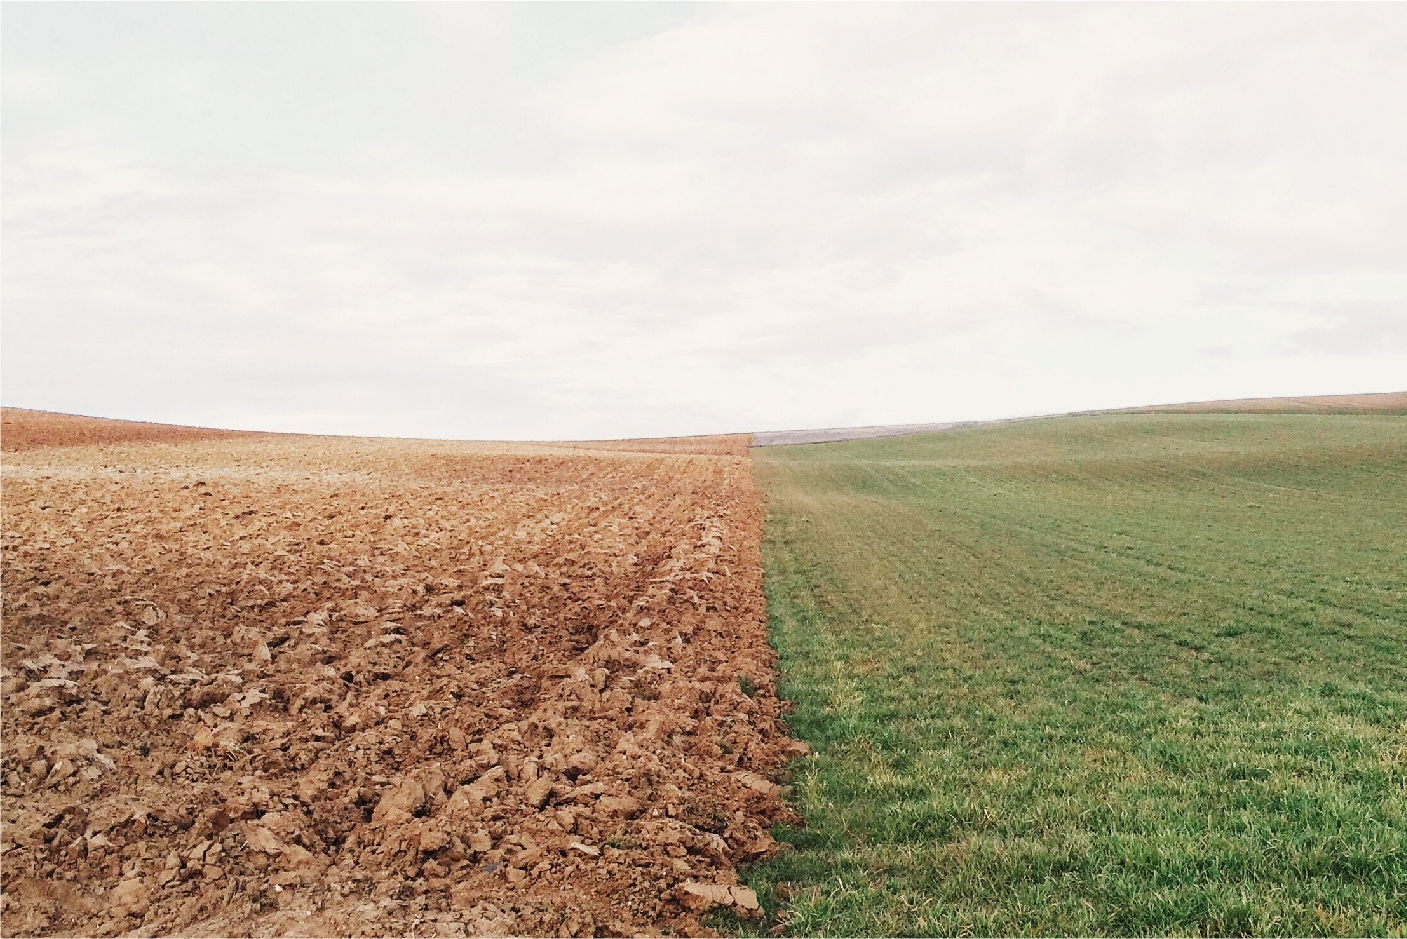 Drought Impacts III: Agricultural Systems